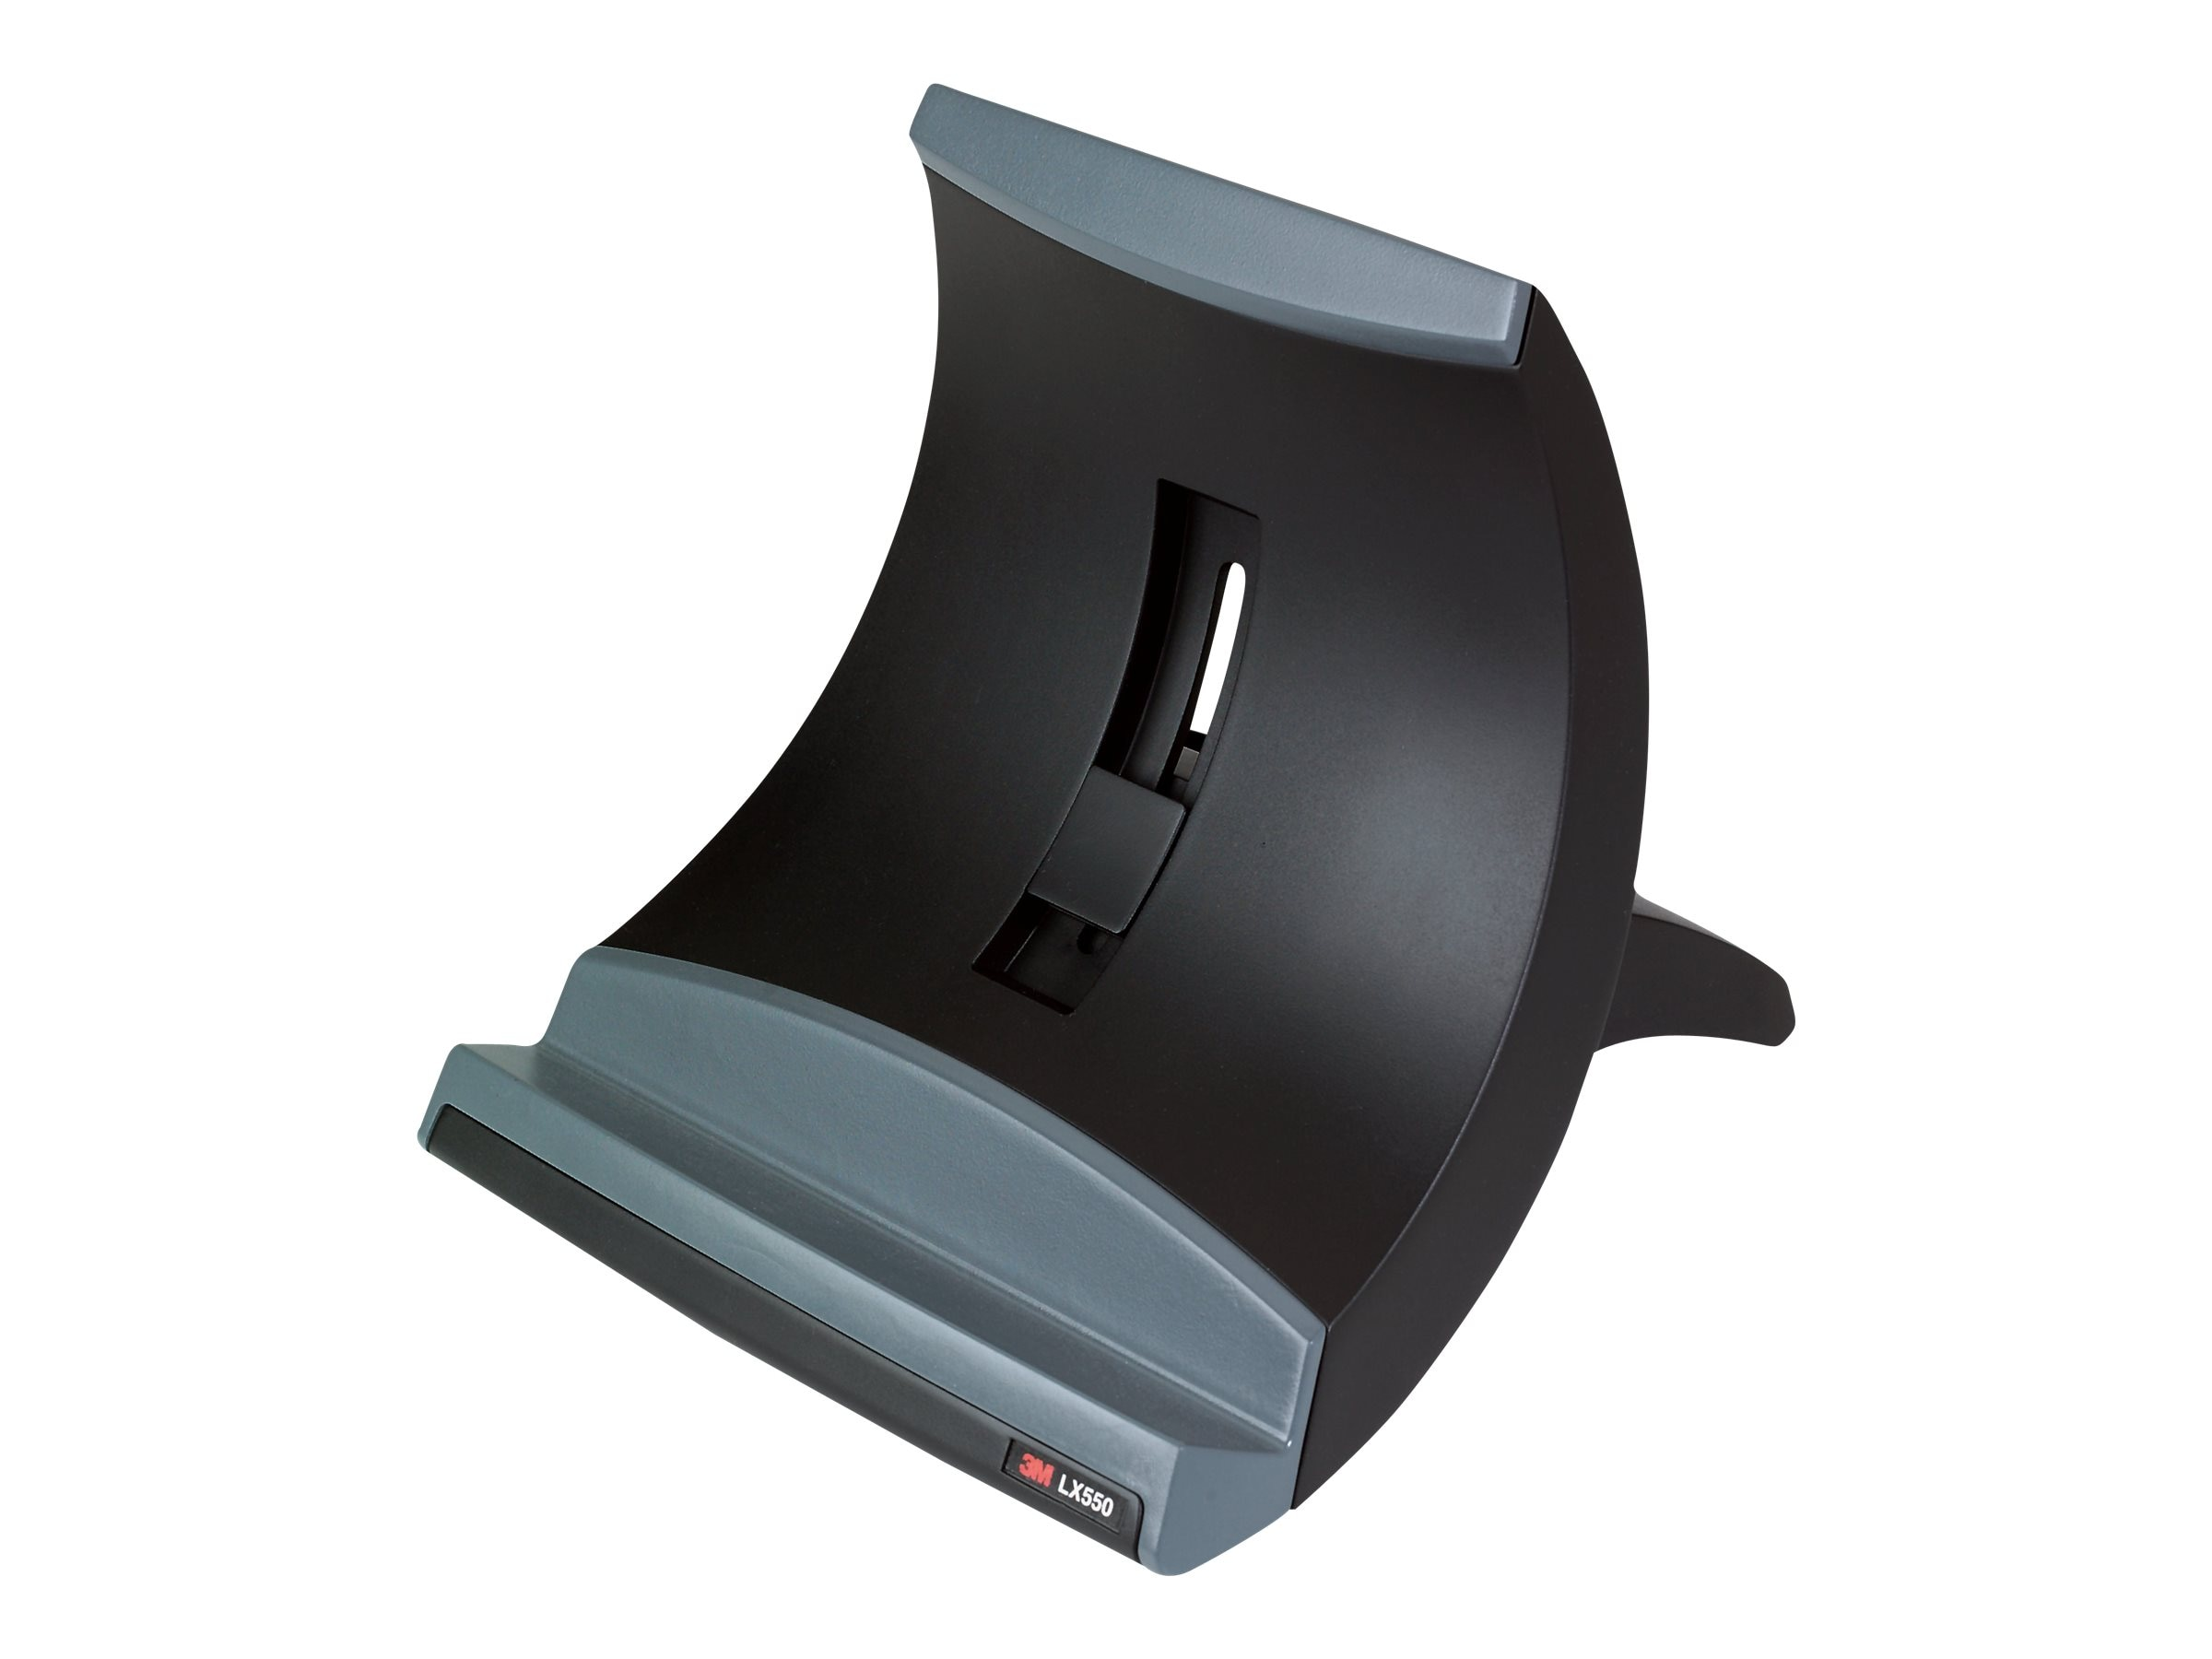 3M Adjustable Vertical Notebook Riser, LX550, 5846865, Ergonomic Products